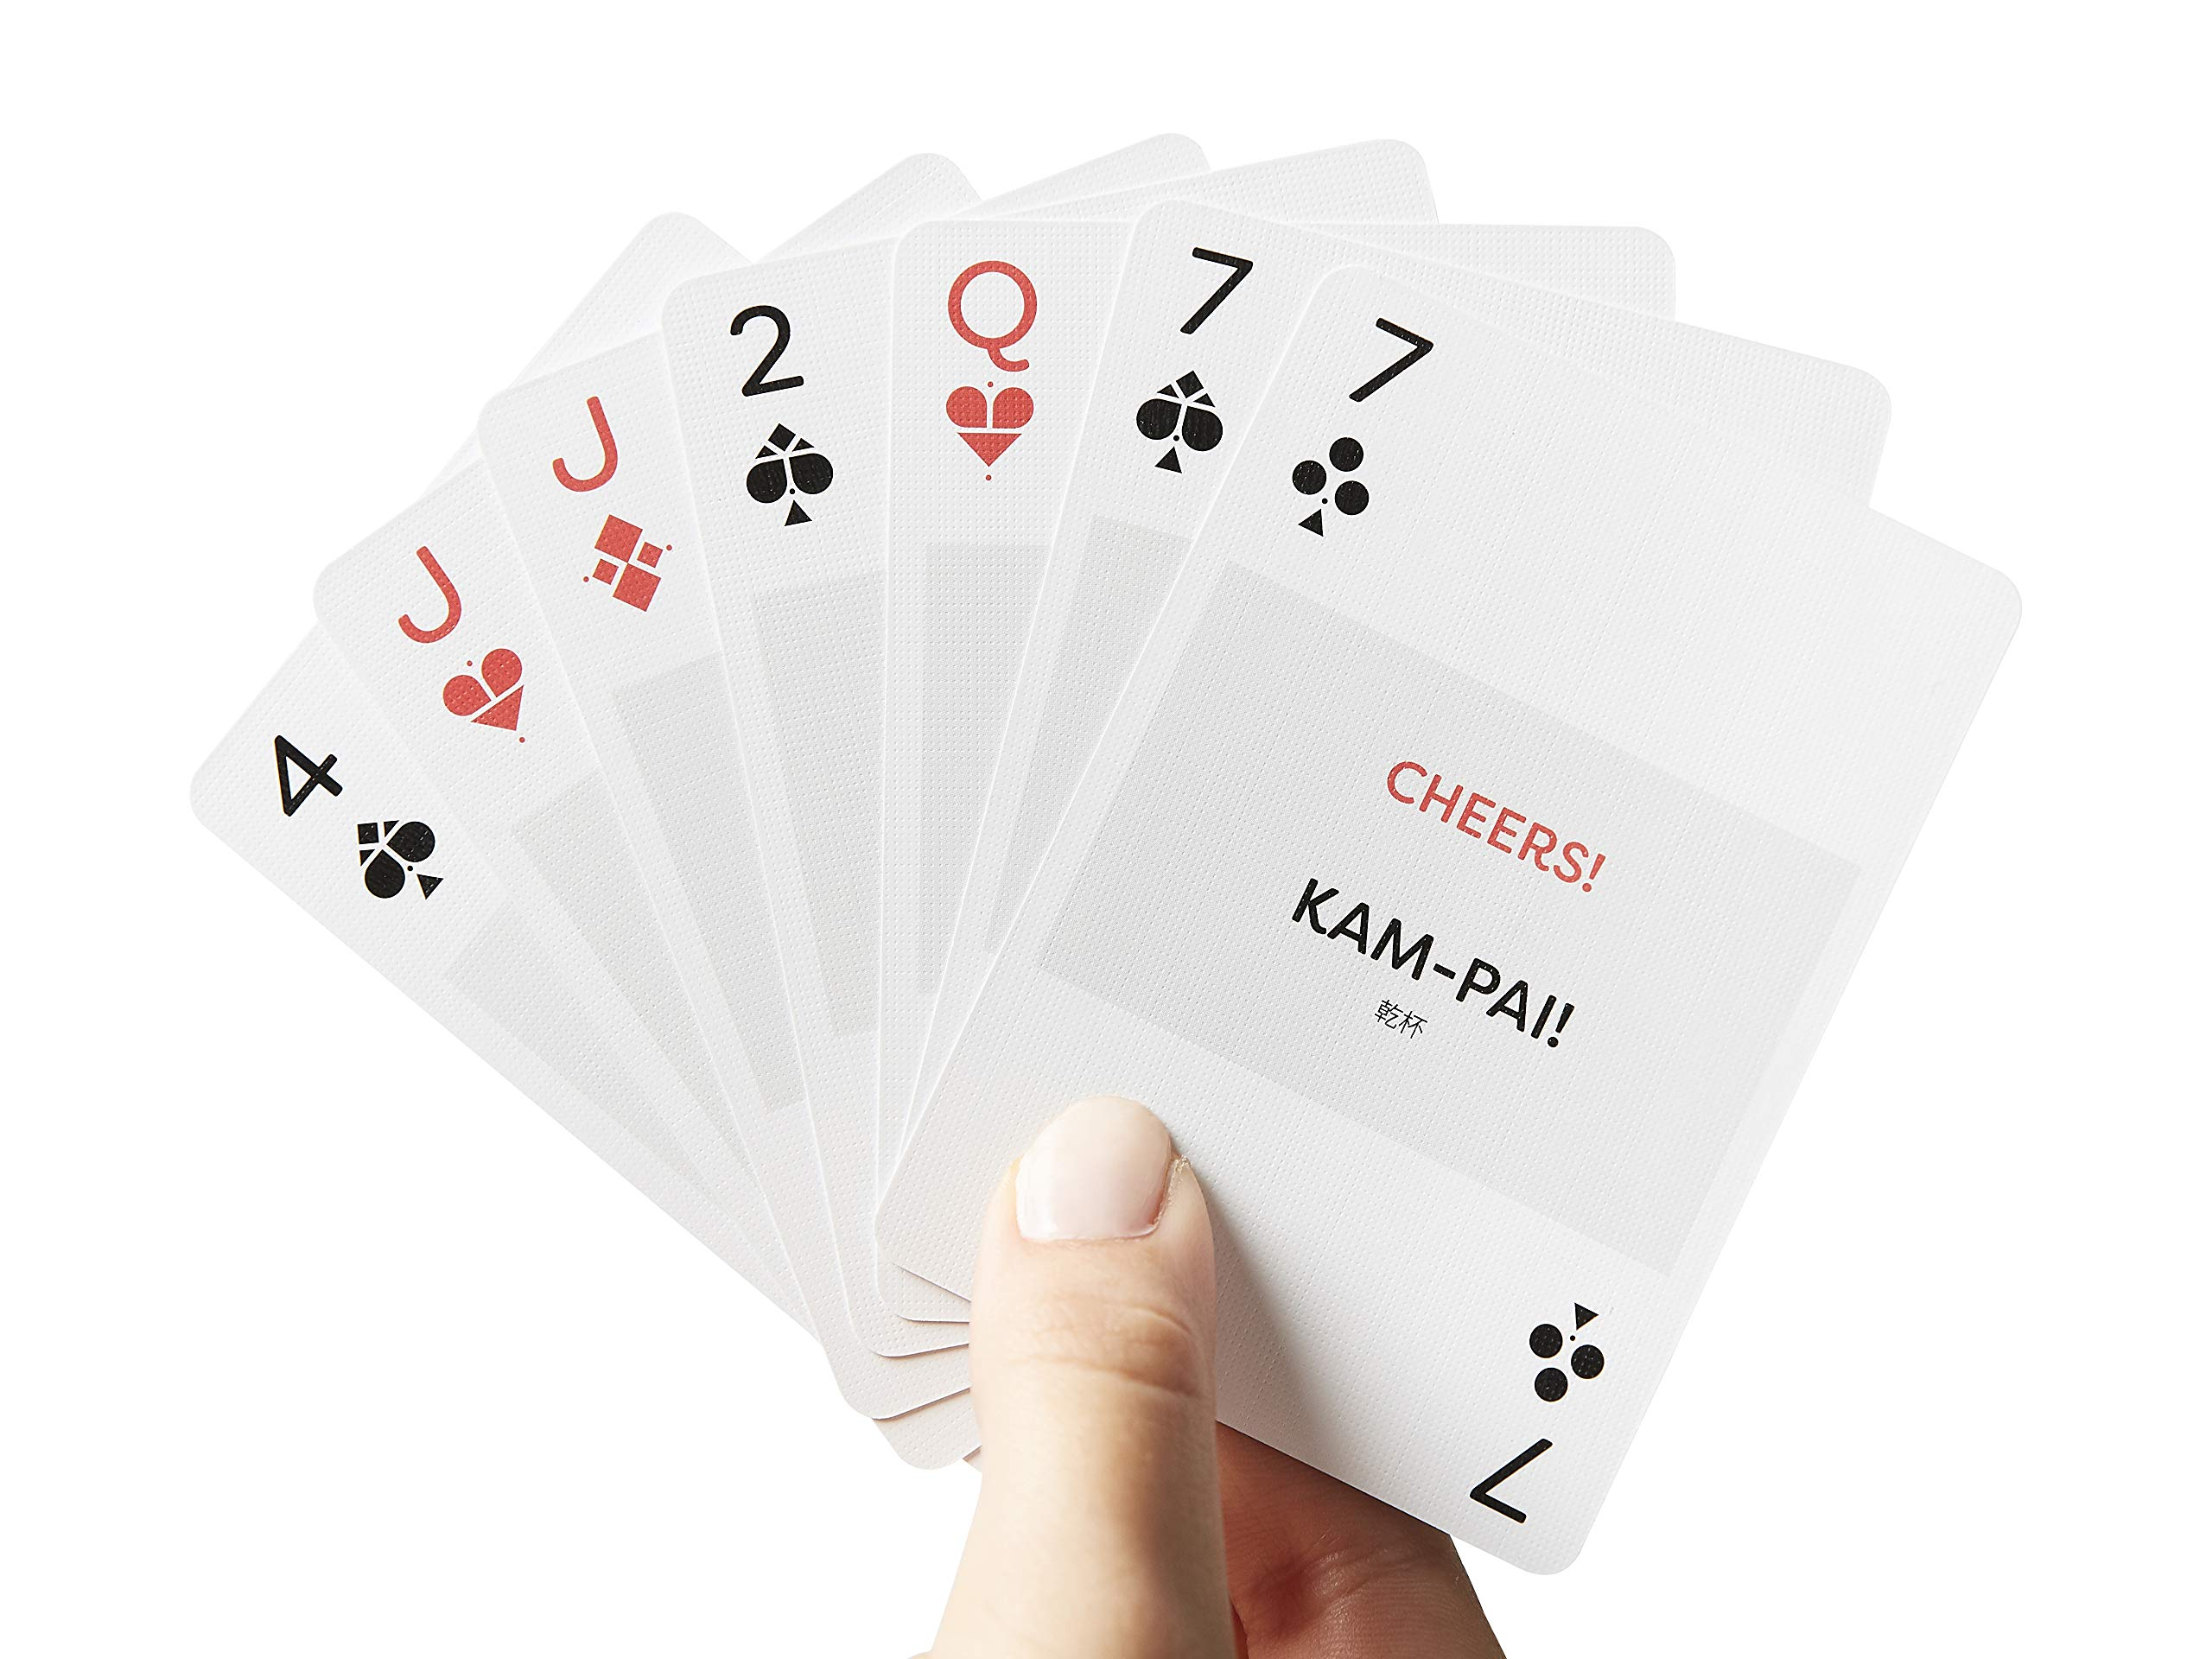 Japanese- Lingo Playing Cards | Language Learning Game Set | Fun Visual Flashcard Deck To Increase Vocabulary and Pronunciation Skills - 54 Useful Phrases